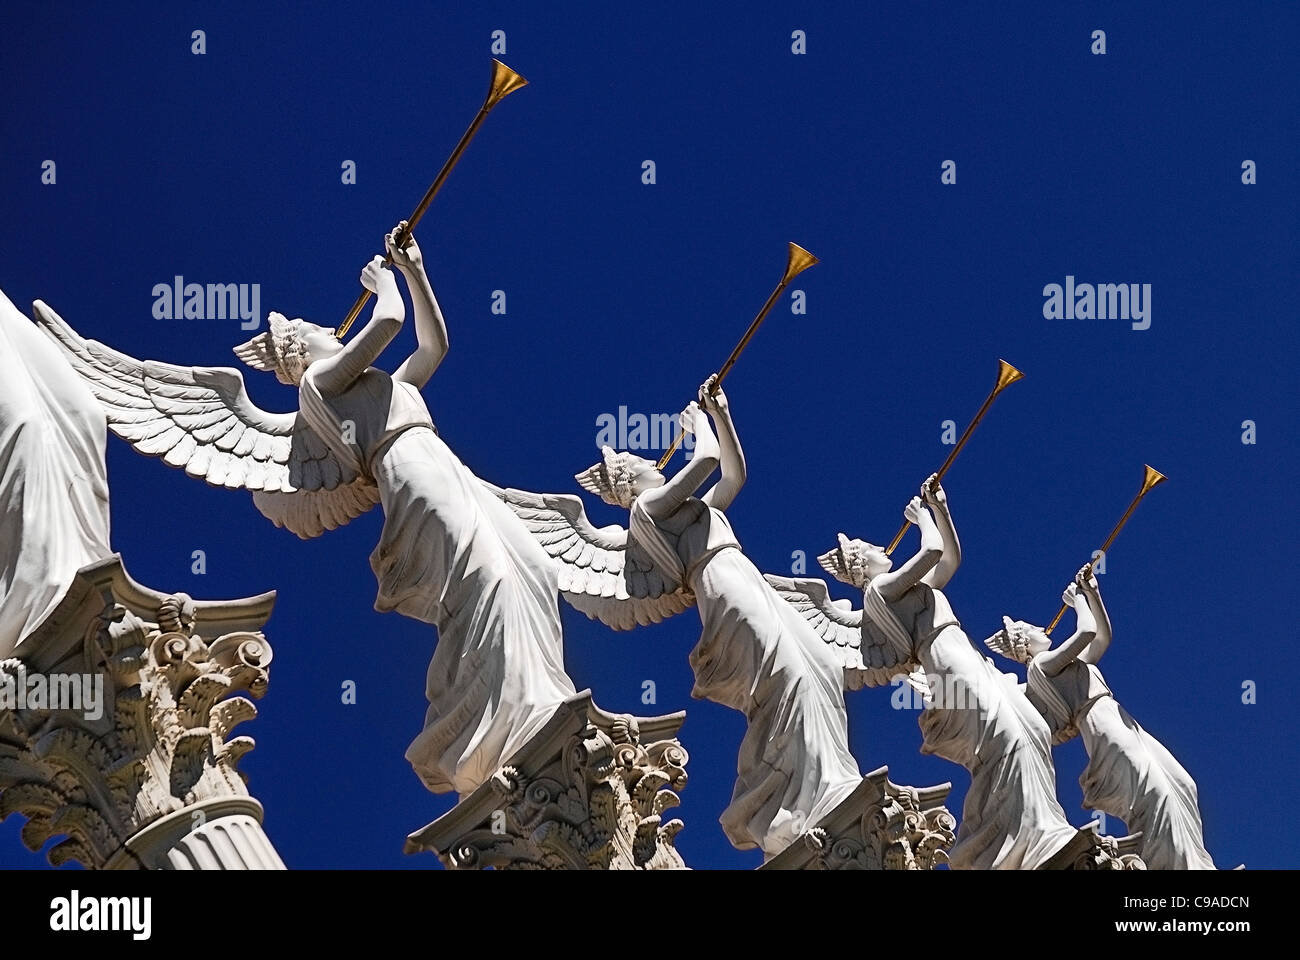 USA, Nevada, Las Vegas, The Strip, detail of winged statues out side Caesars Palace hotel and casino. - Stock Image